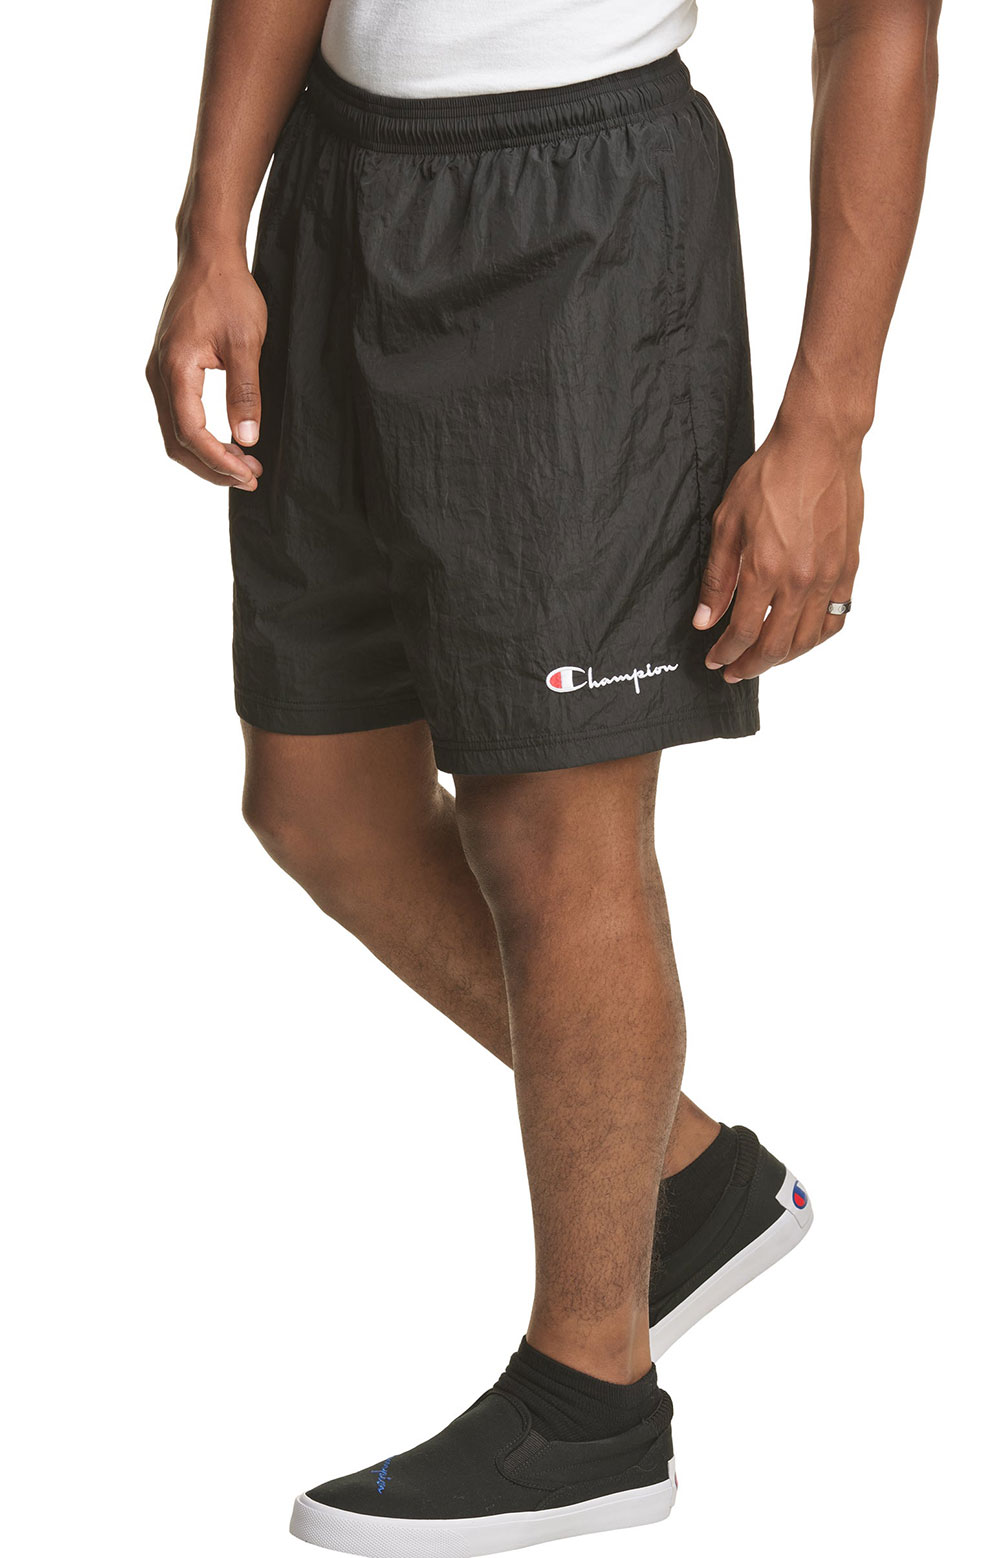 6-Inch Nylon Warm Up Shorts - Black